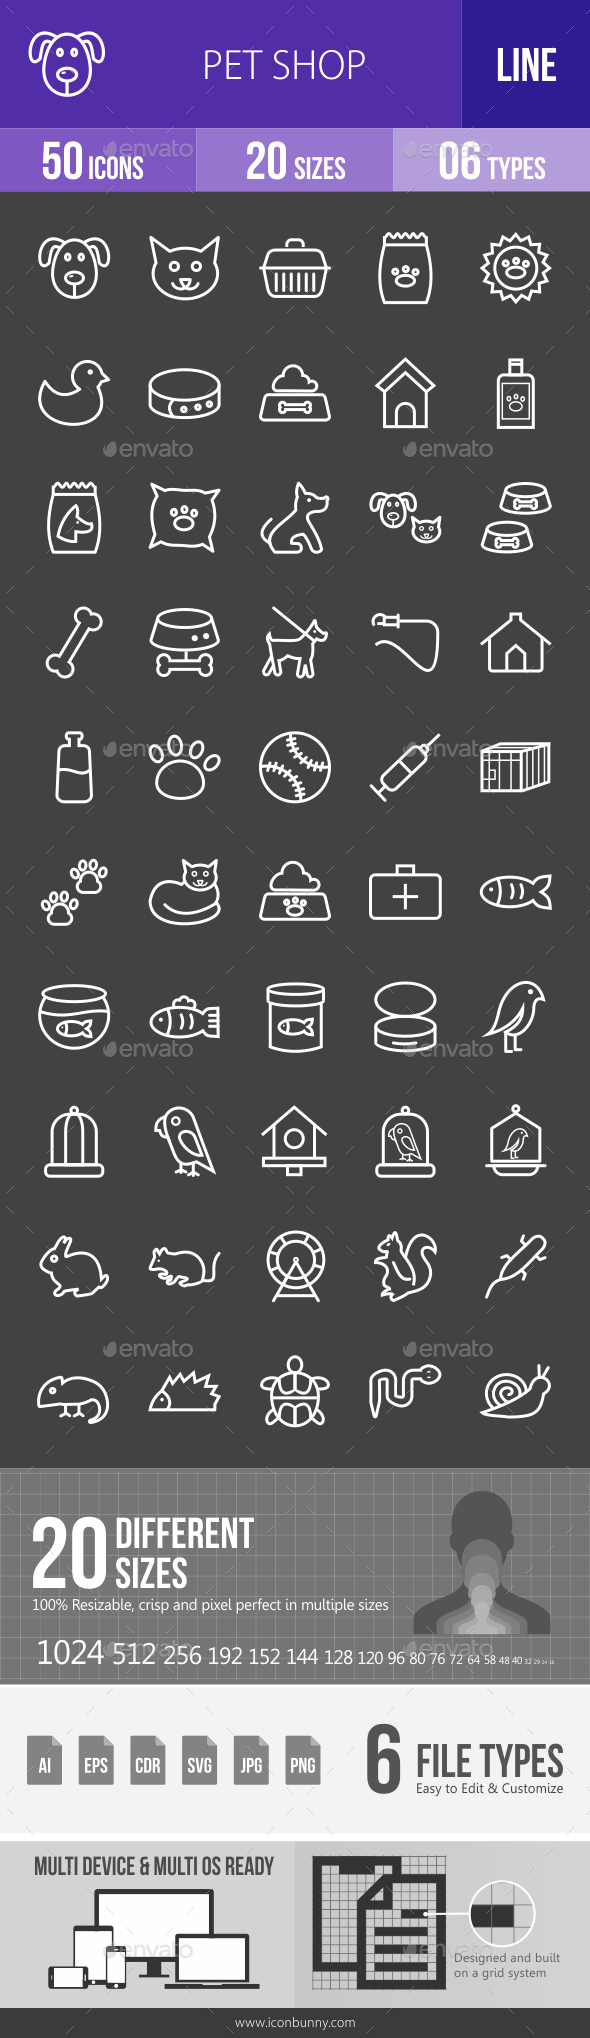 Pet Shop Line Inverted Icons - Icons